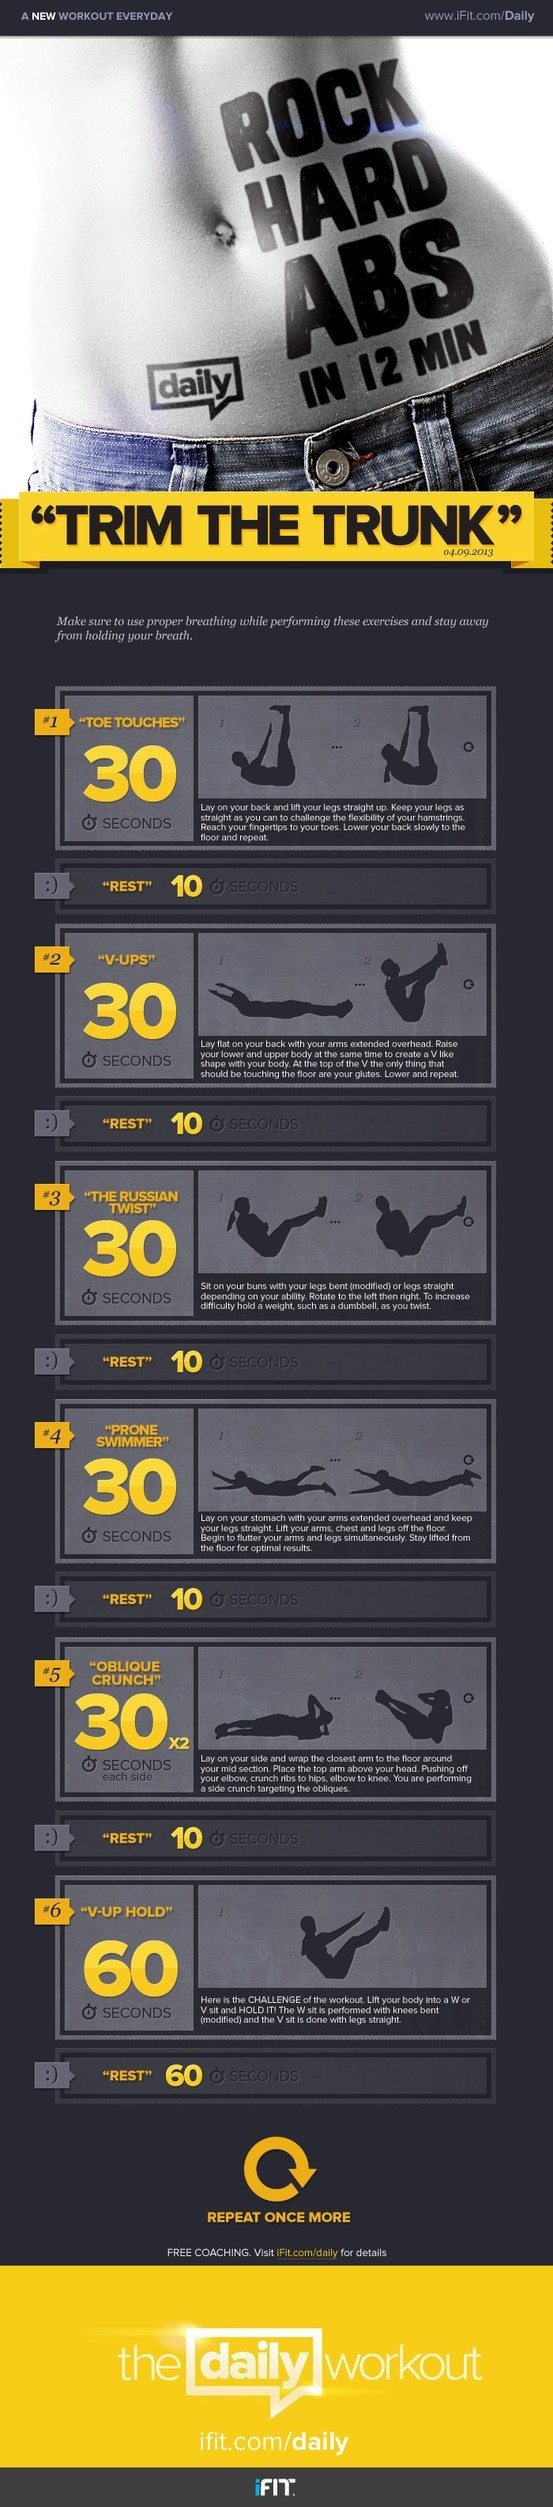 How to Get Rock Hard Abs